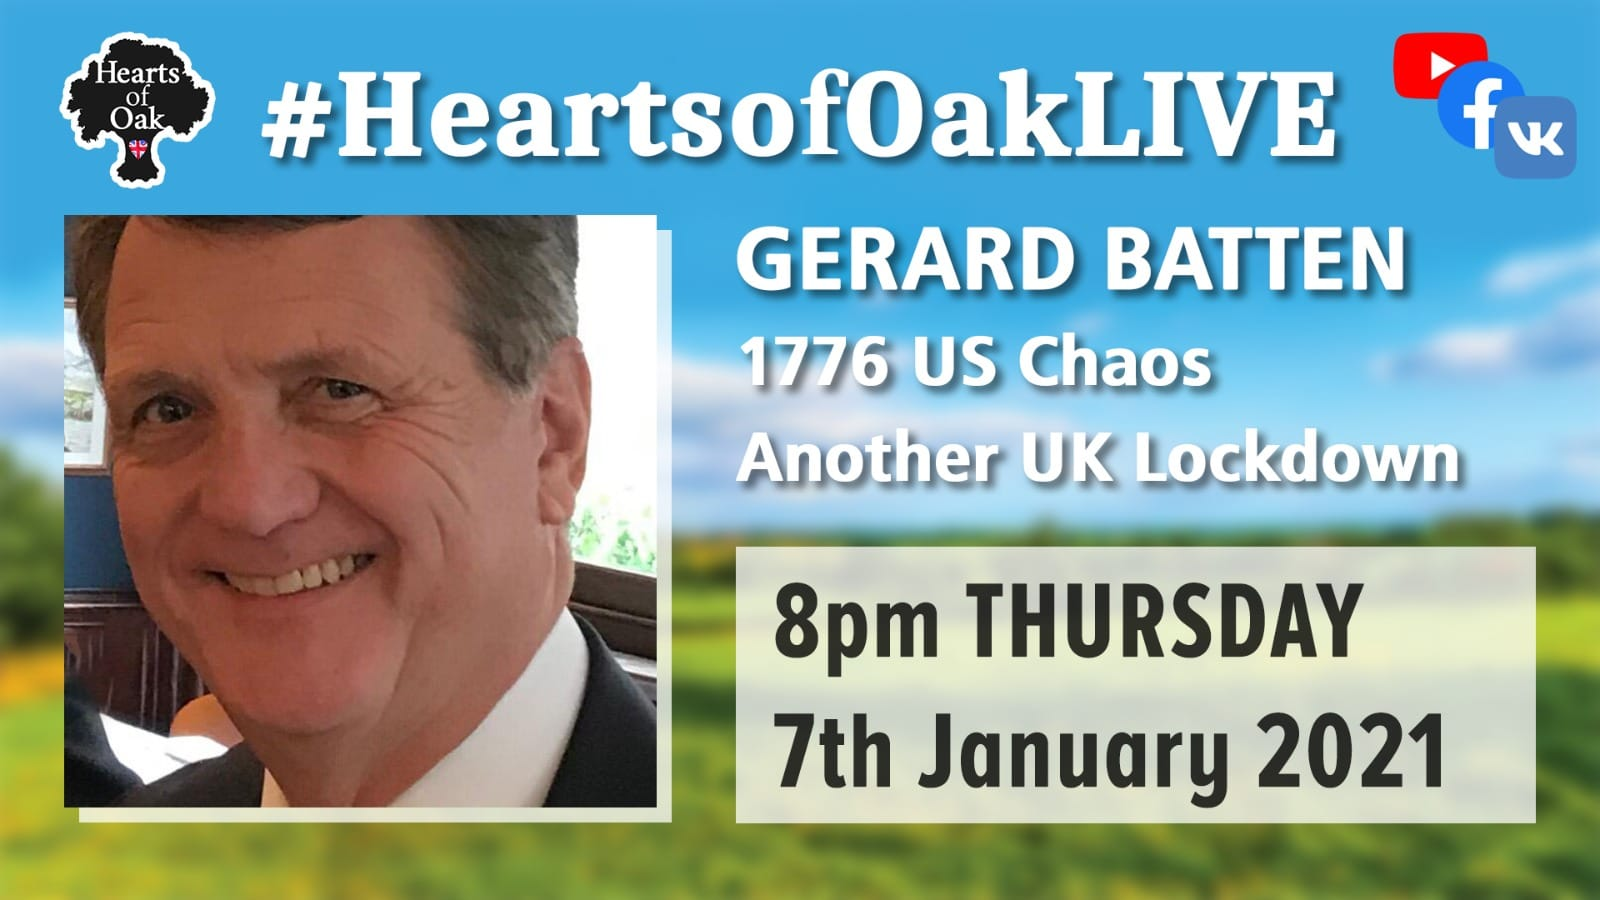 1776 US Chaos and more lockdown in the UK with Gerard Batten